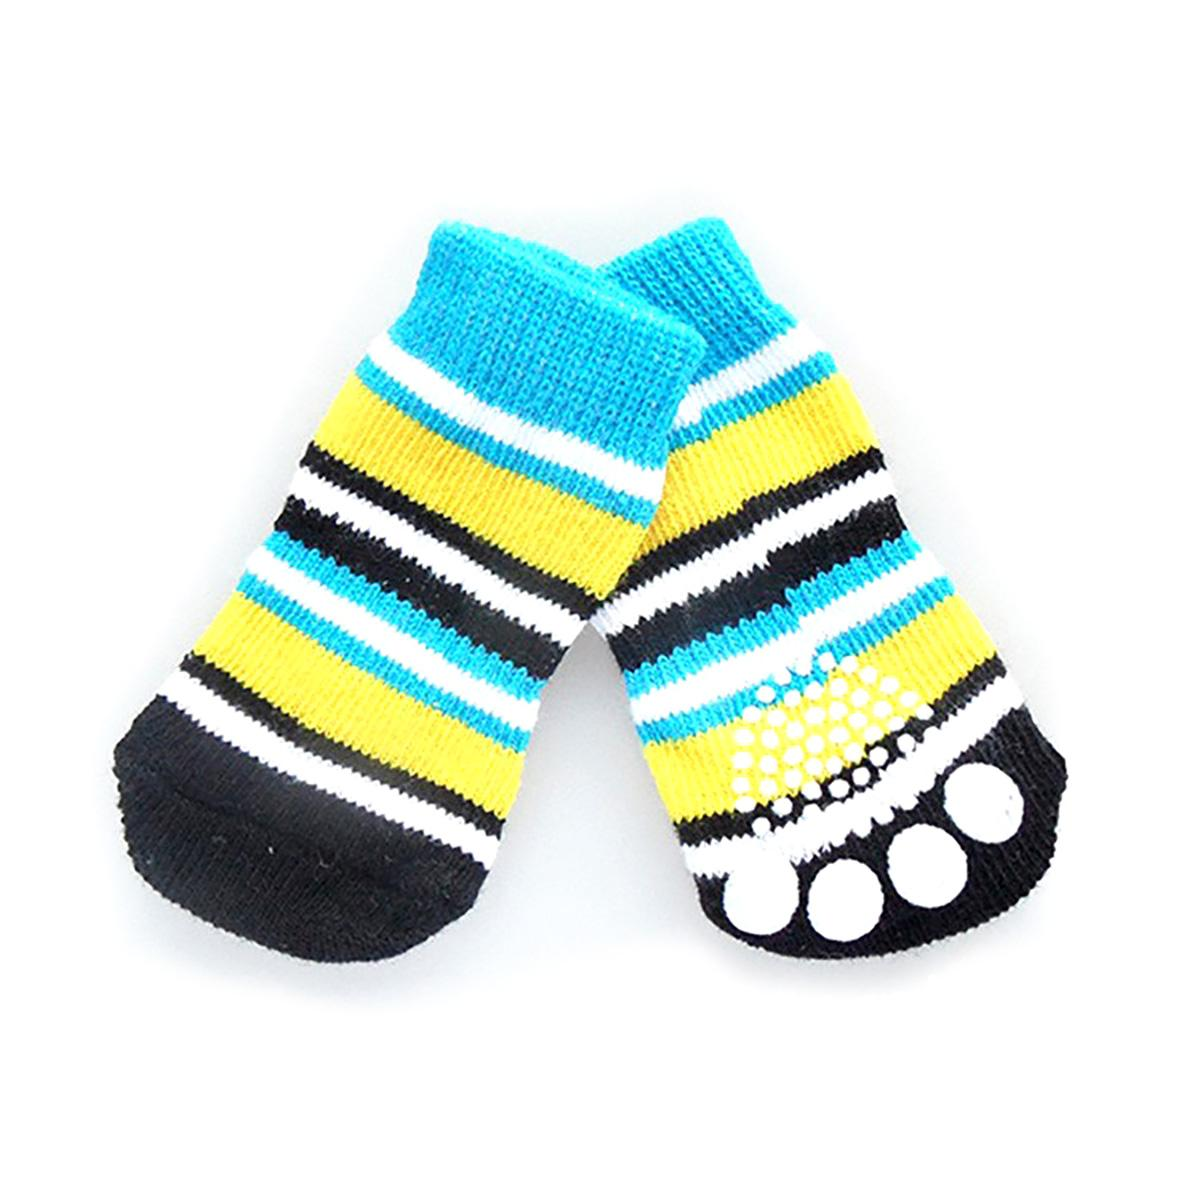 Doggy Socks - Classic Blue and Yellow Stripes